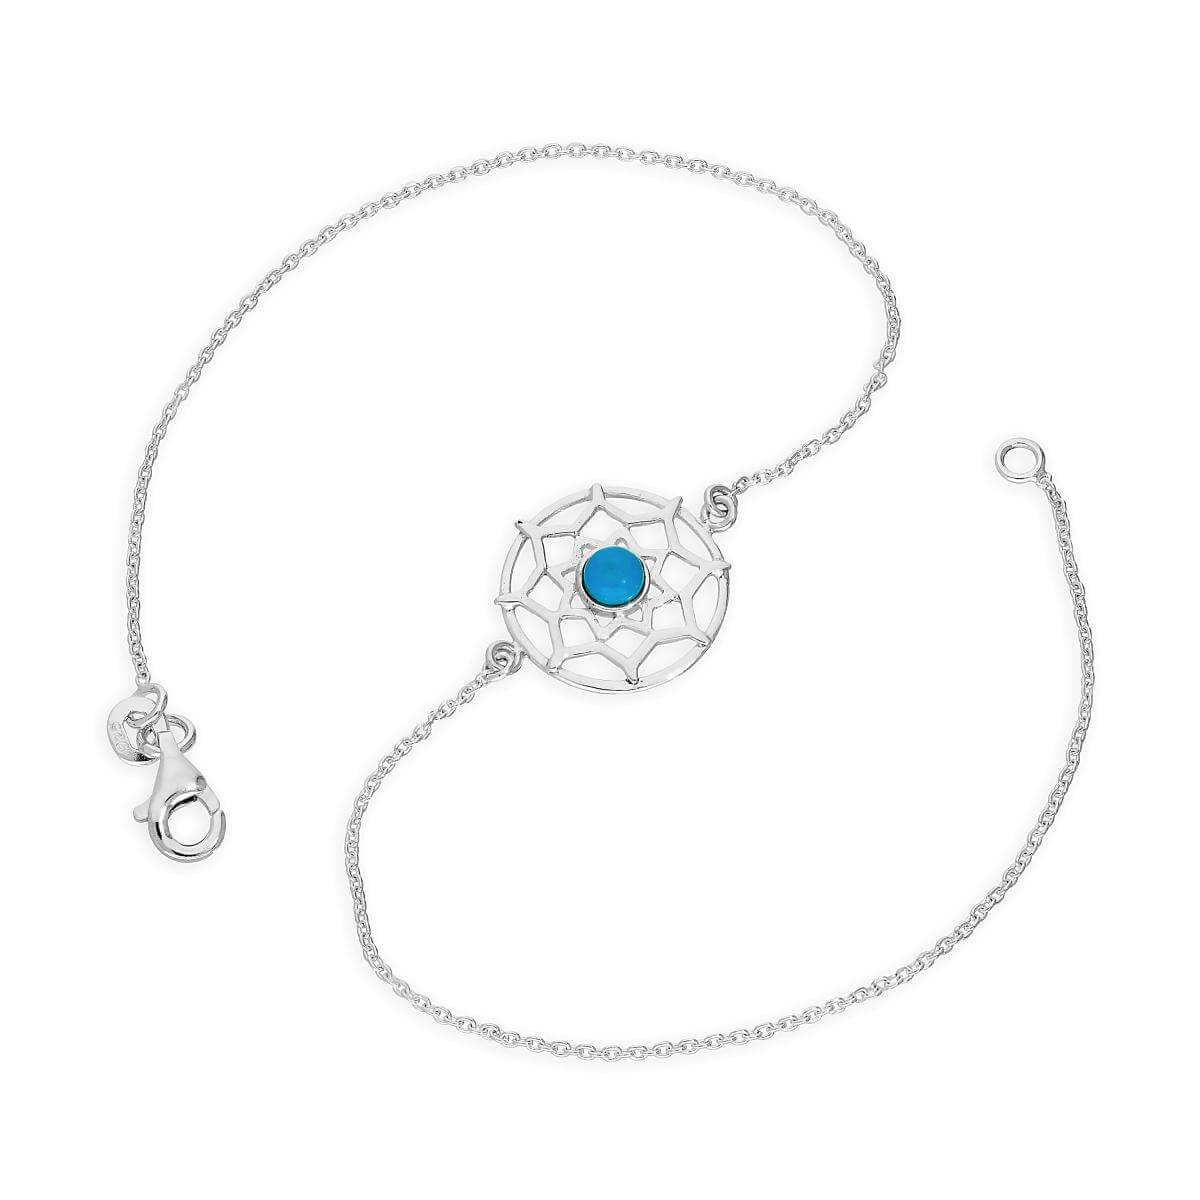 Sterling Silver & Blue Enamel Dreamcatcher Anklet 10 Inches